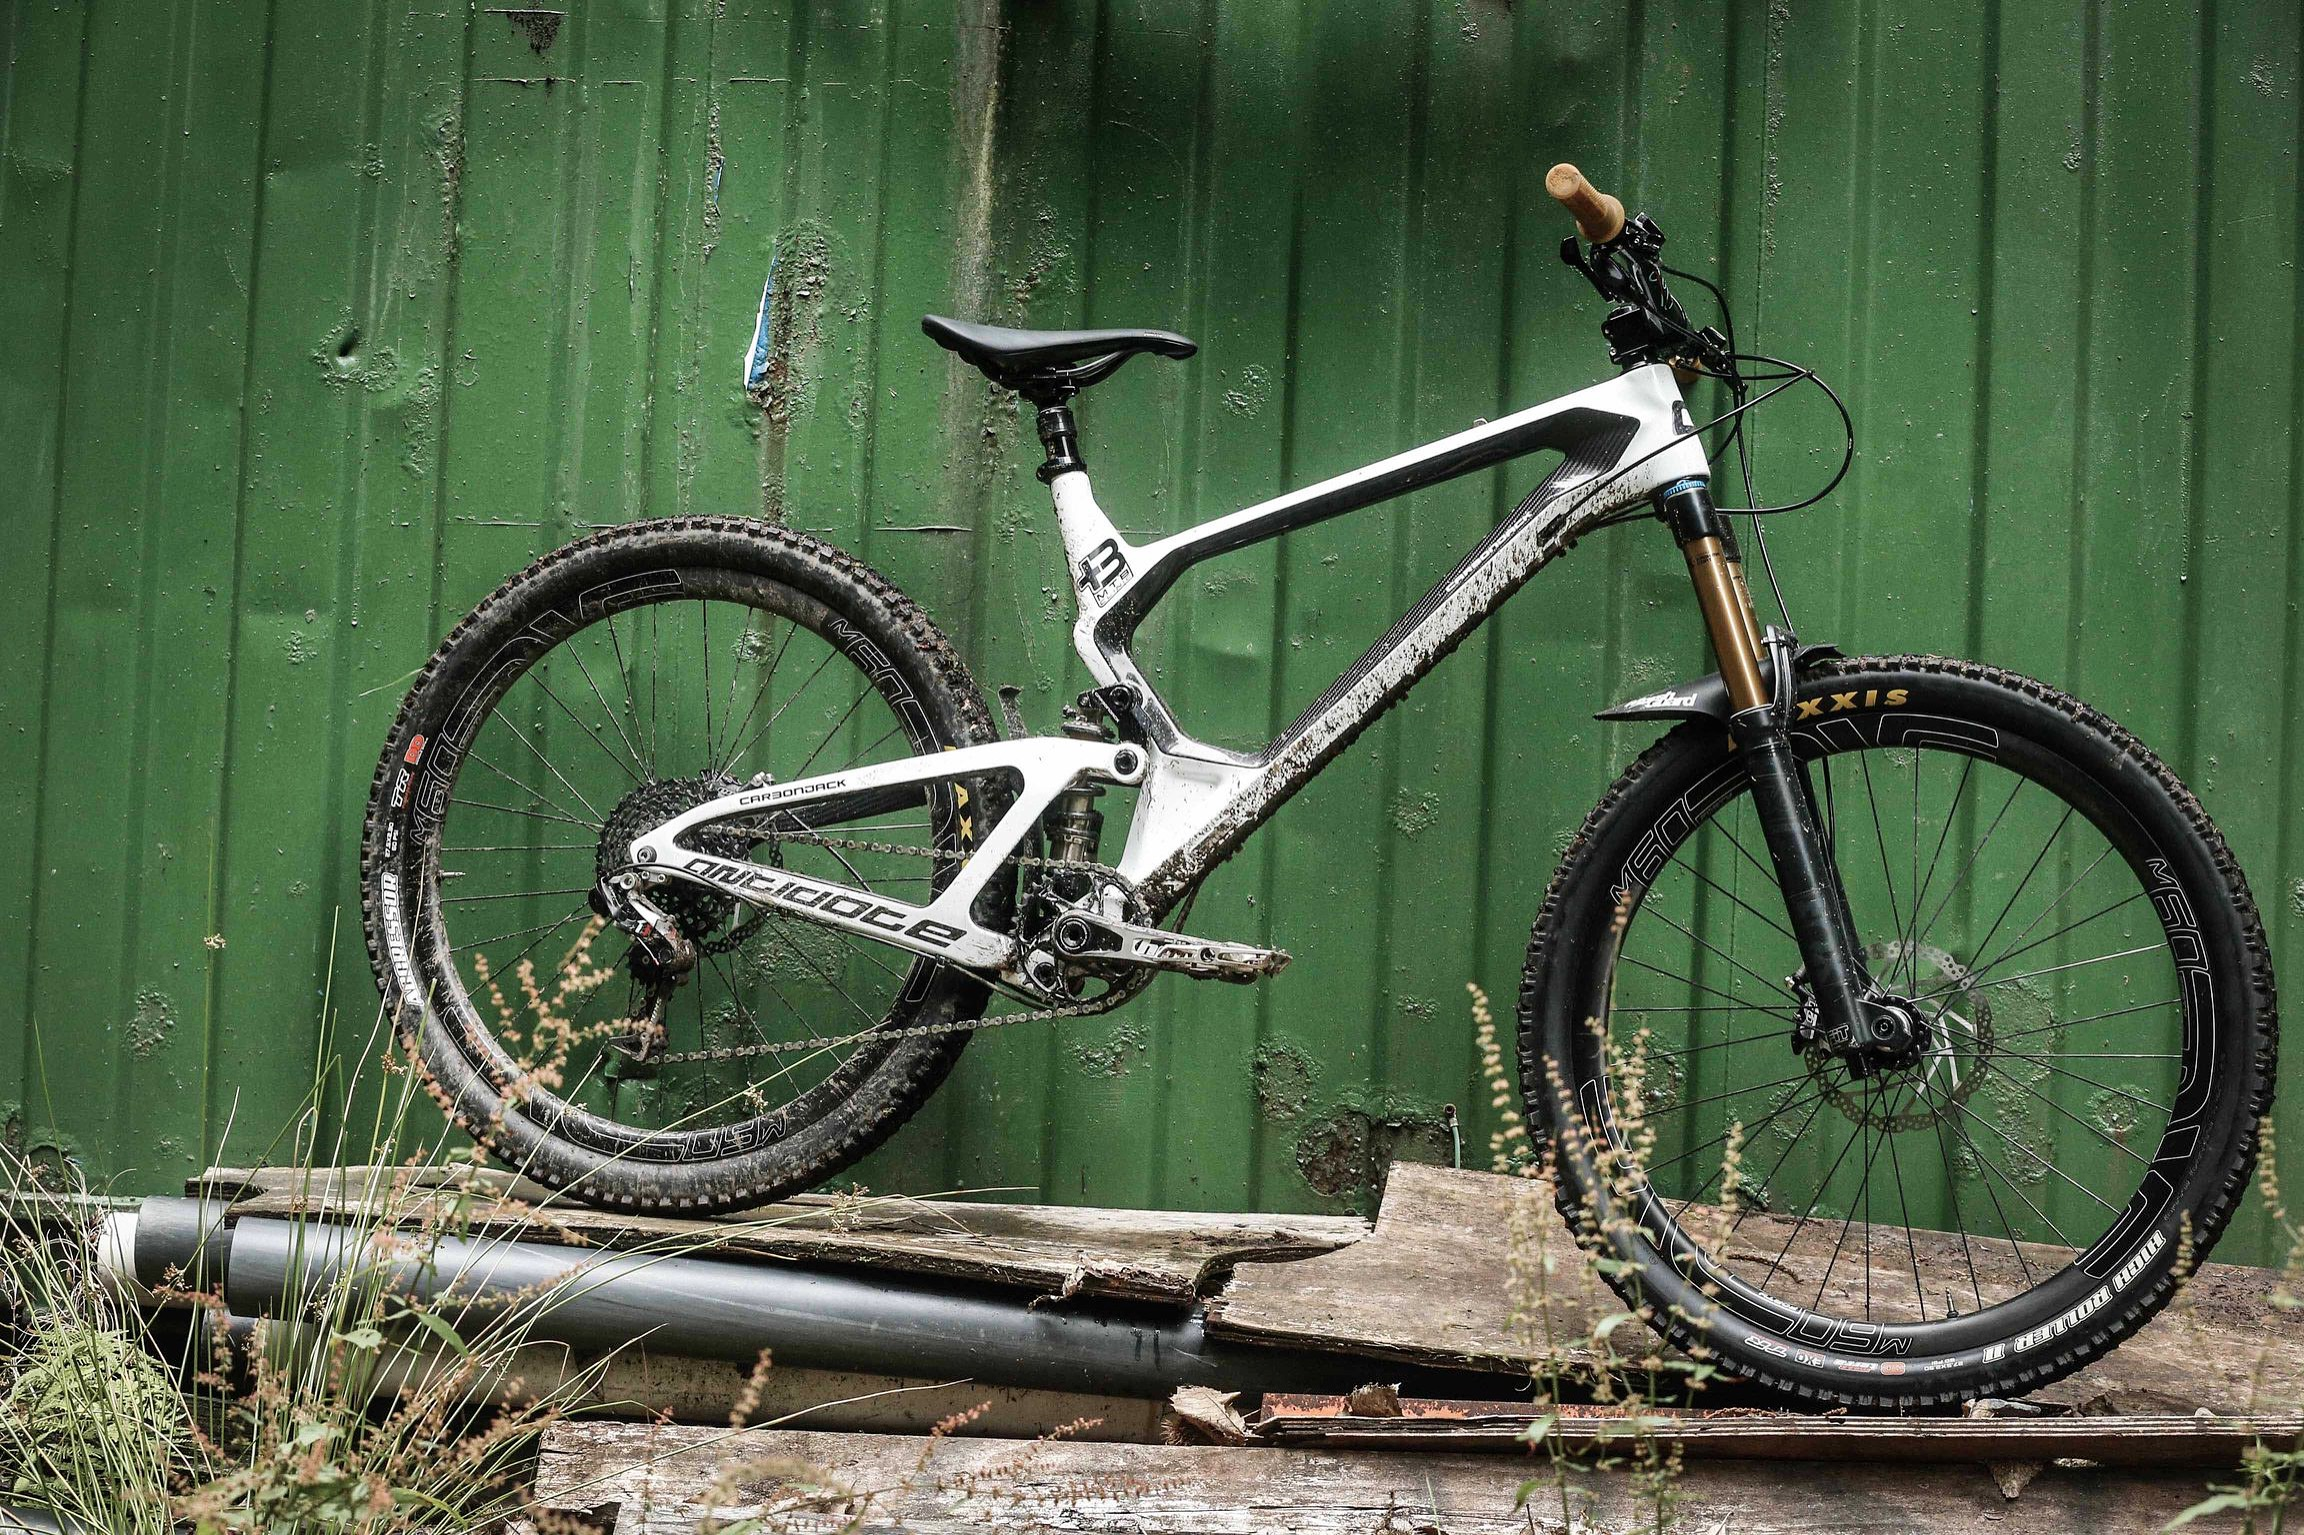 Plus 3 MTB Founder Dave Jaquin's Antidote CarbonJack